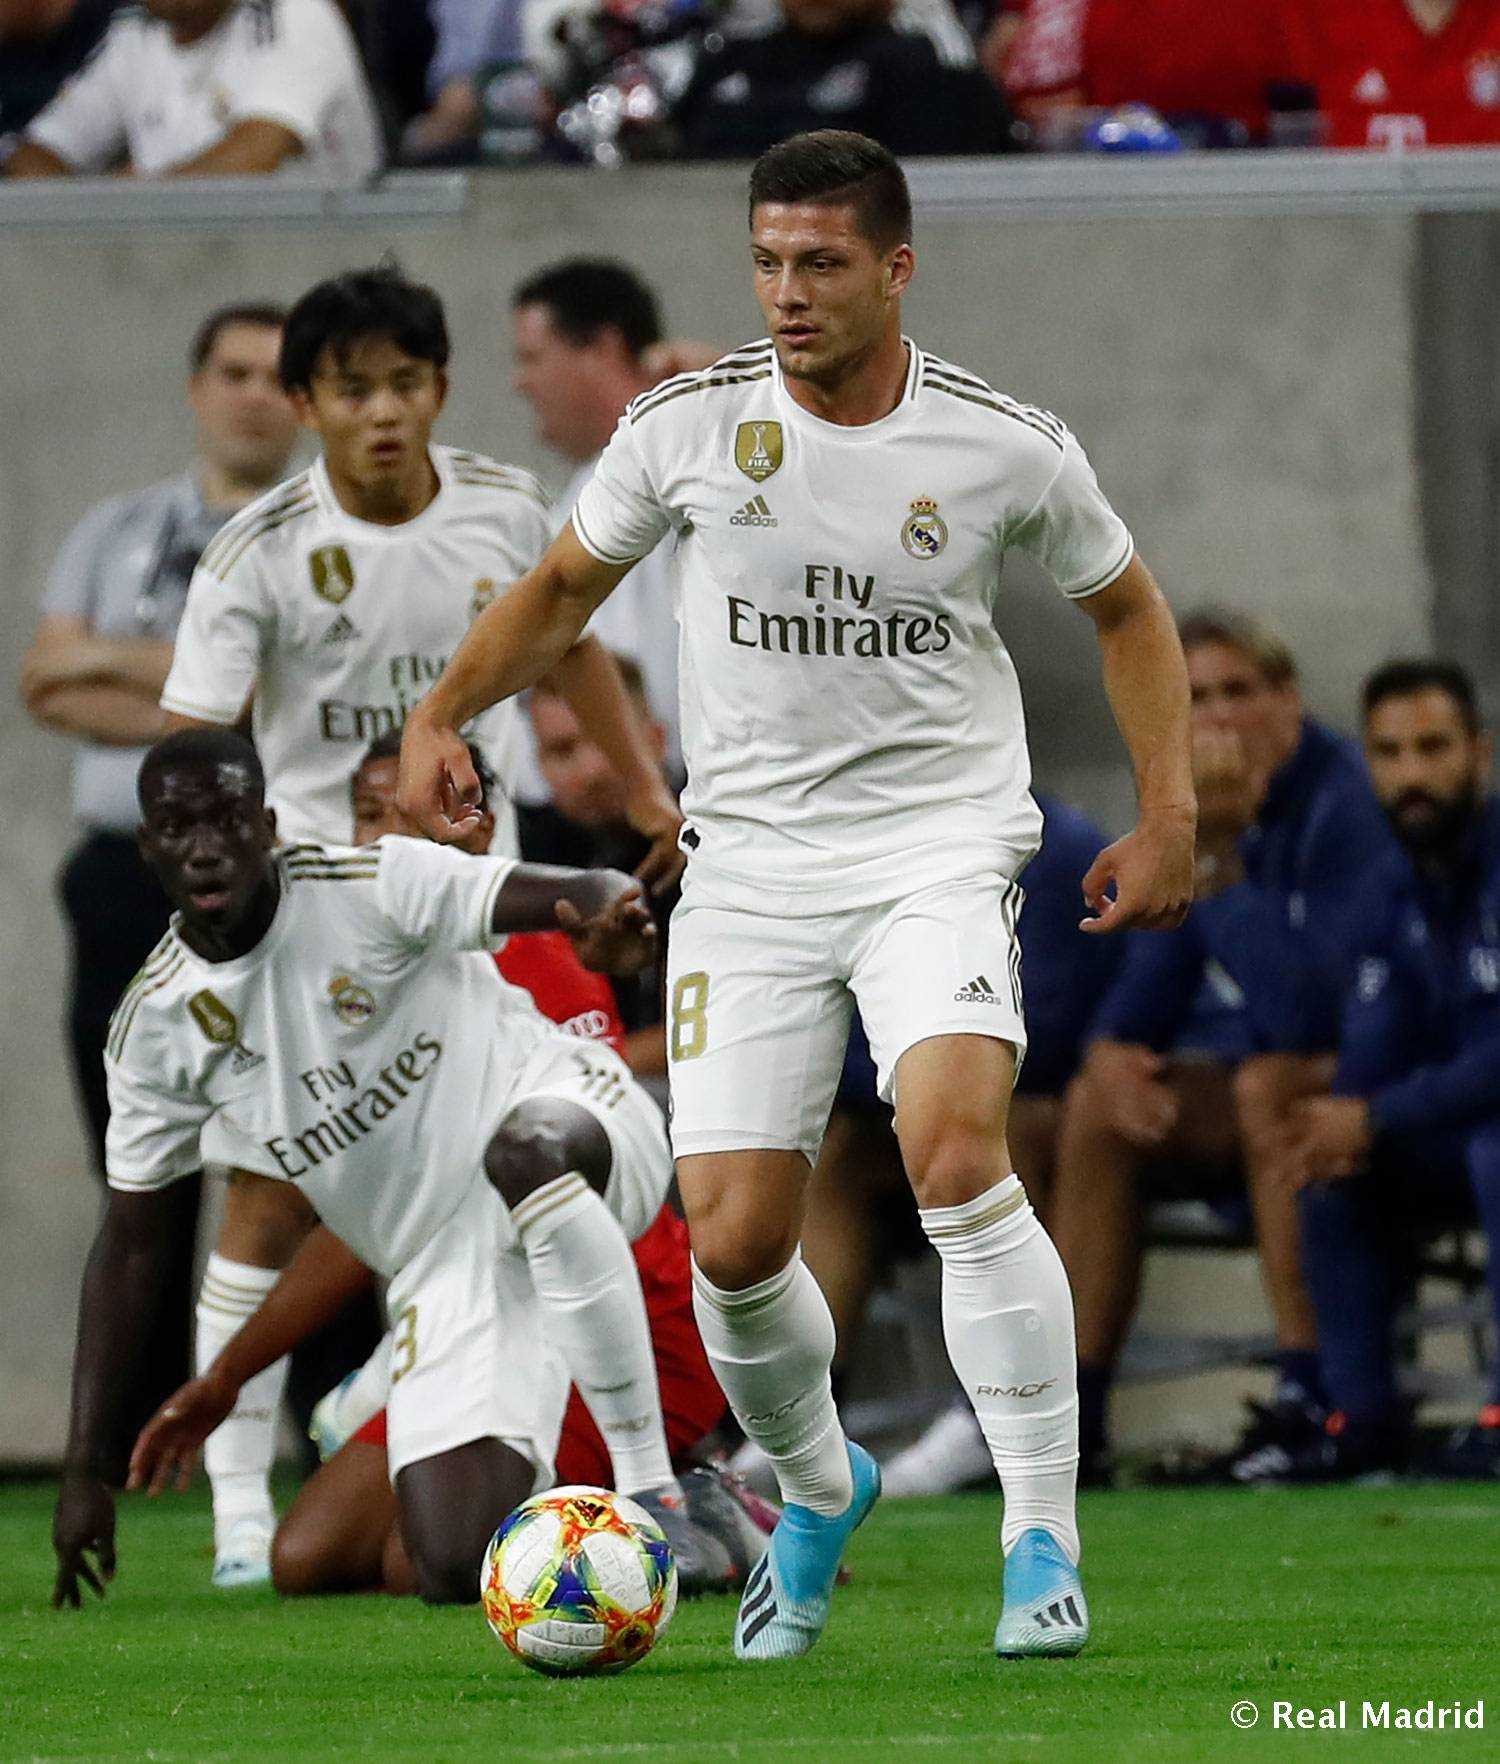 Real Madrid - Debut de Jović con el Real Madrid - 21-07-2019